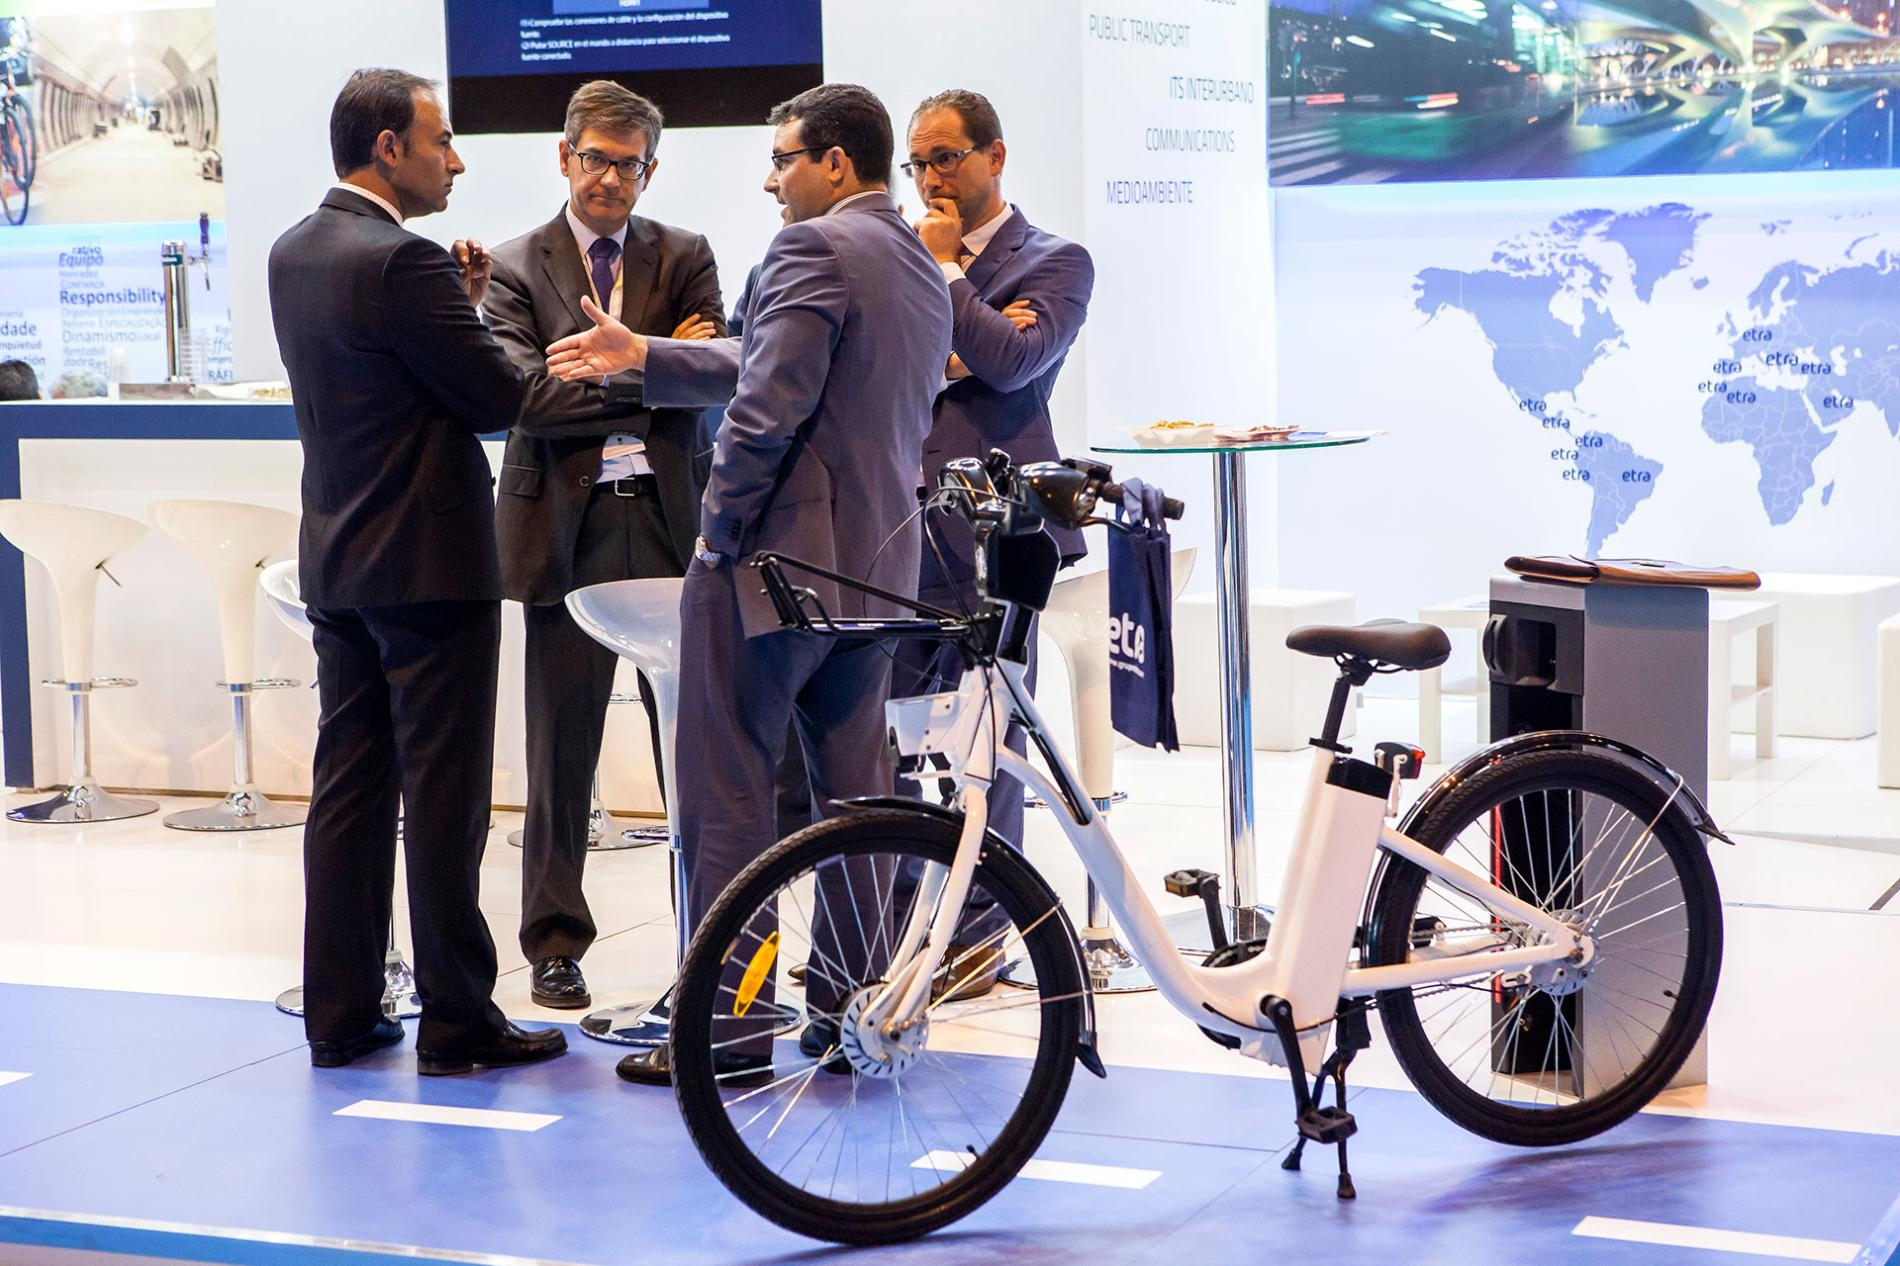 Professionals of the sector next to an electric bicycle